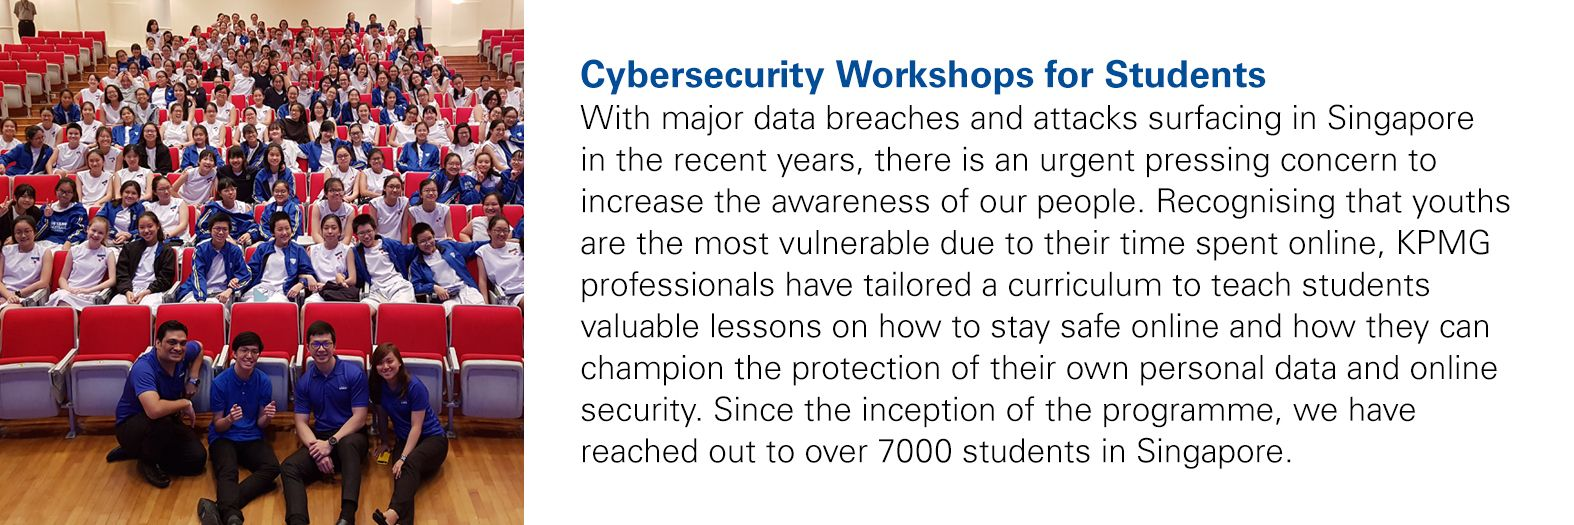 Cybersecurity Workshops for Students